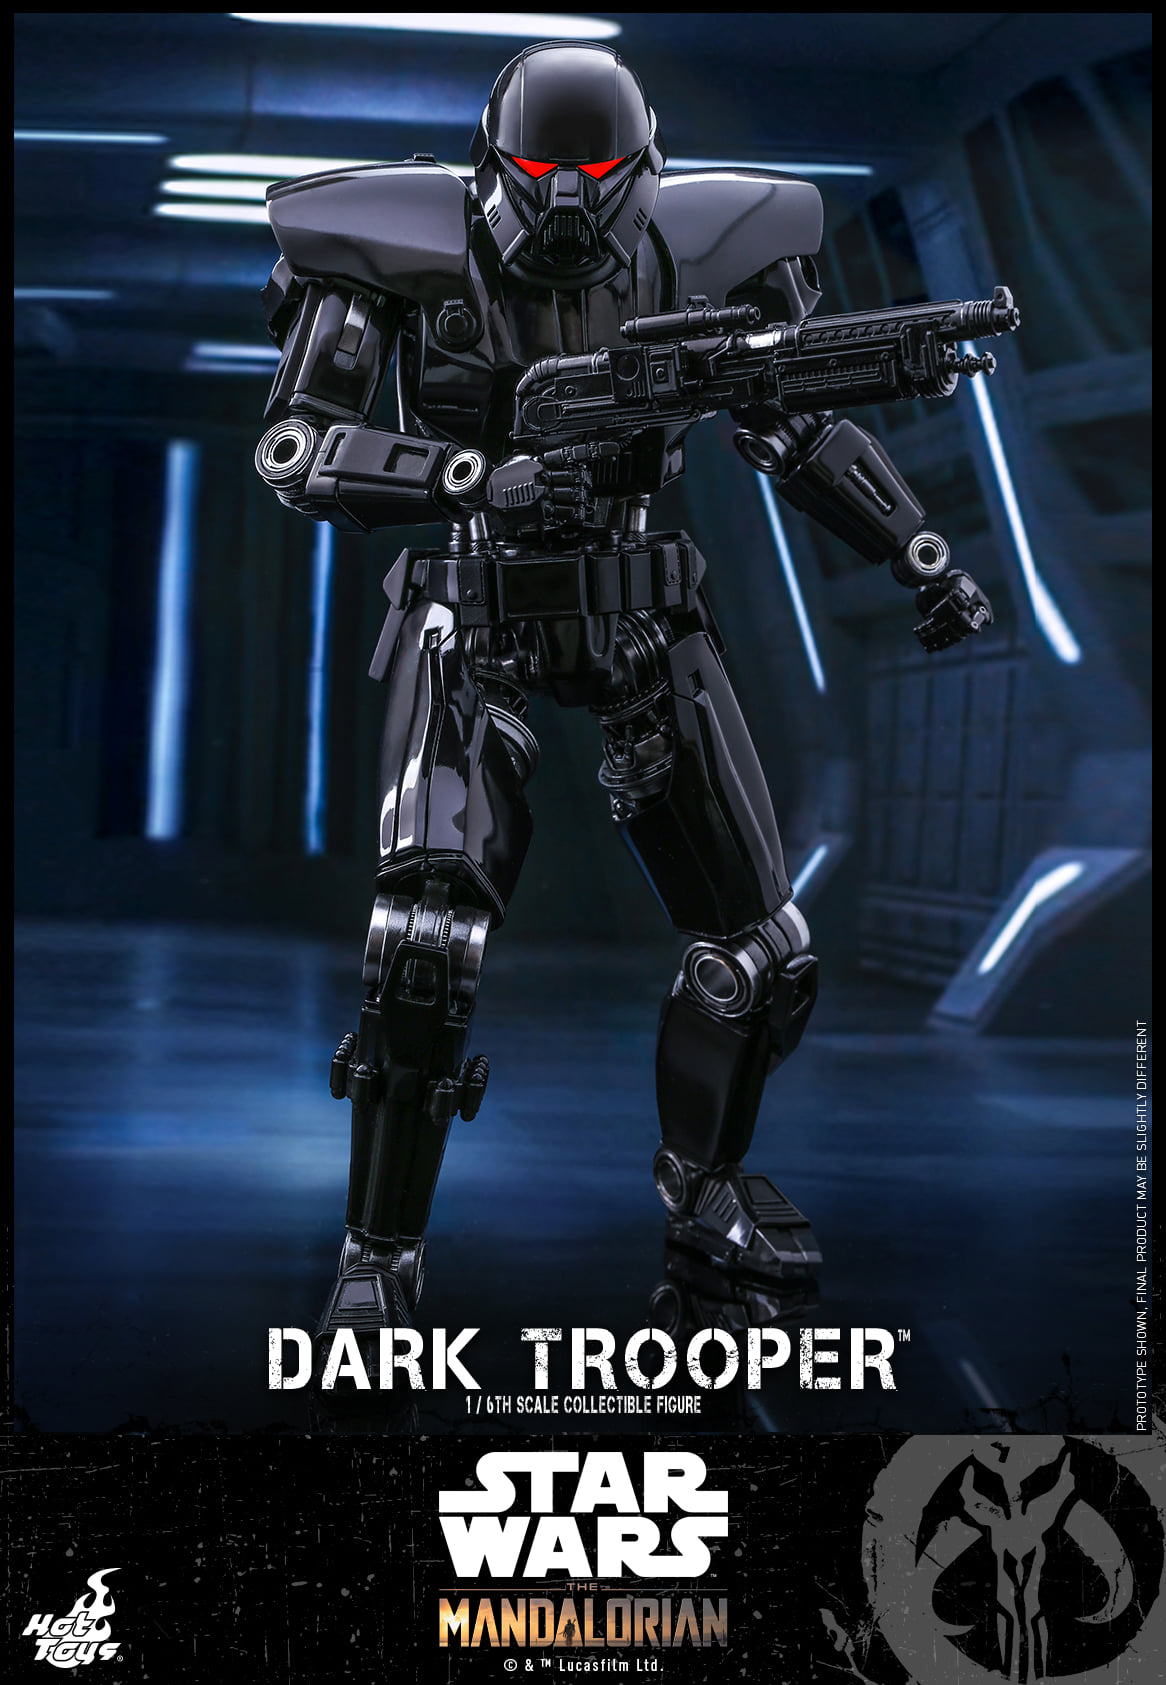 Pre-Order Hot Toys Star Wars The Mandalorian Dark Trooper Figure